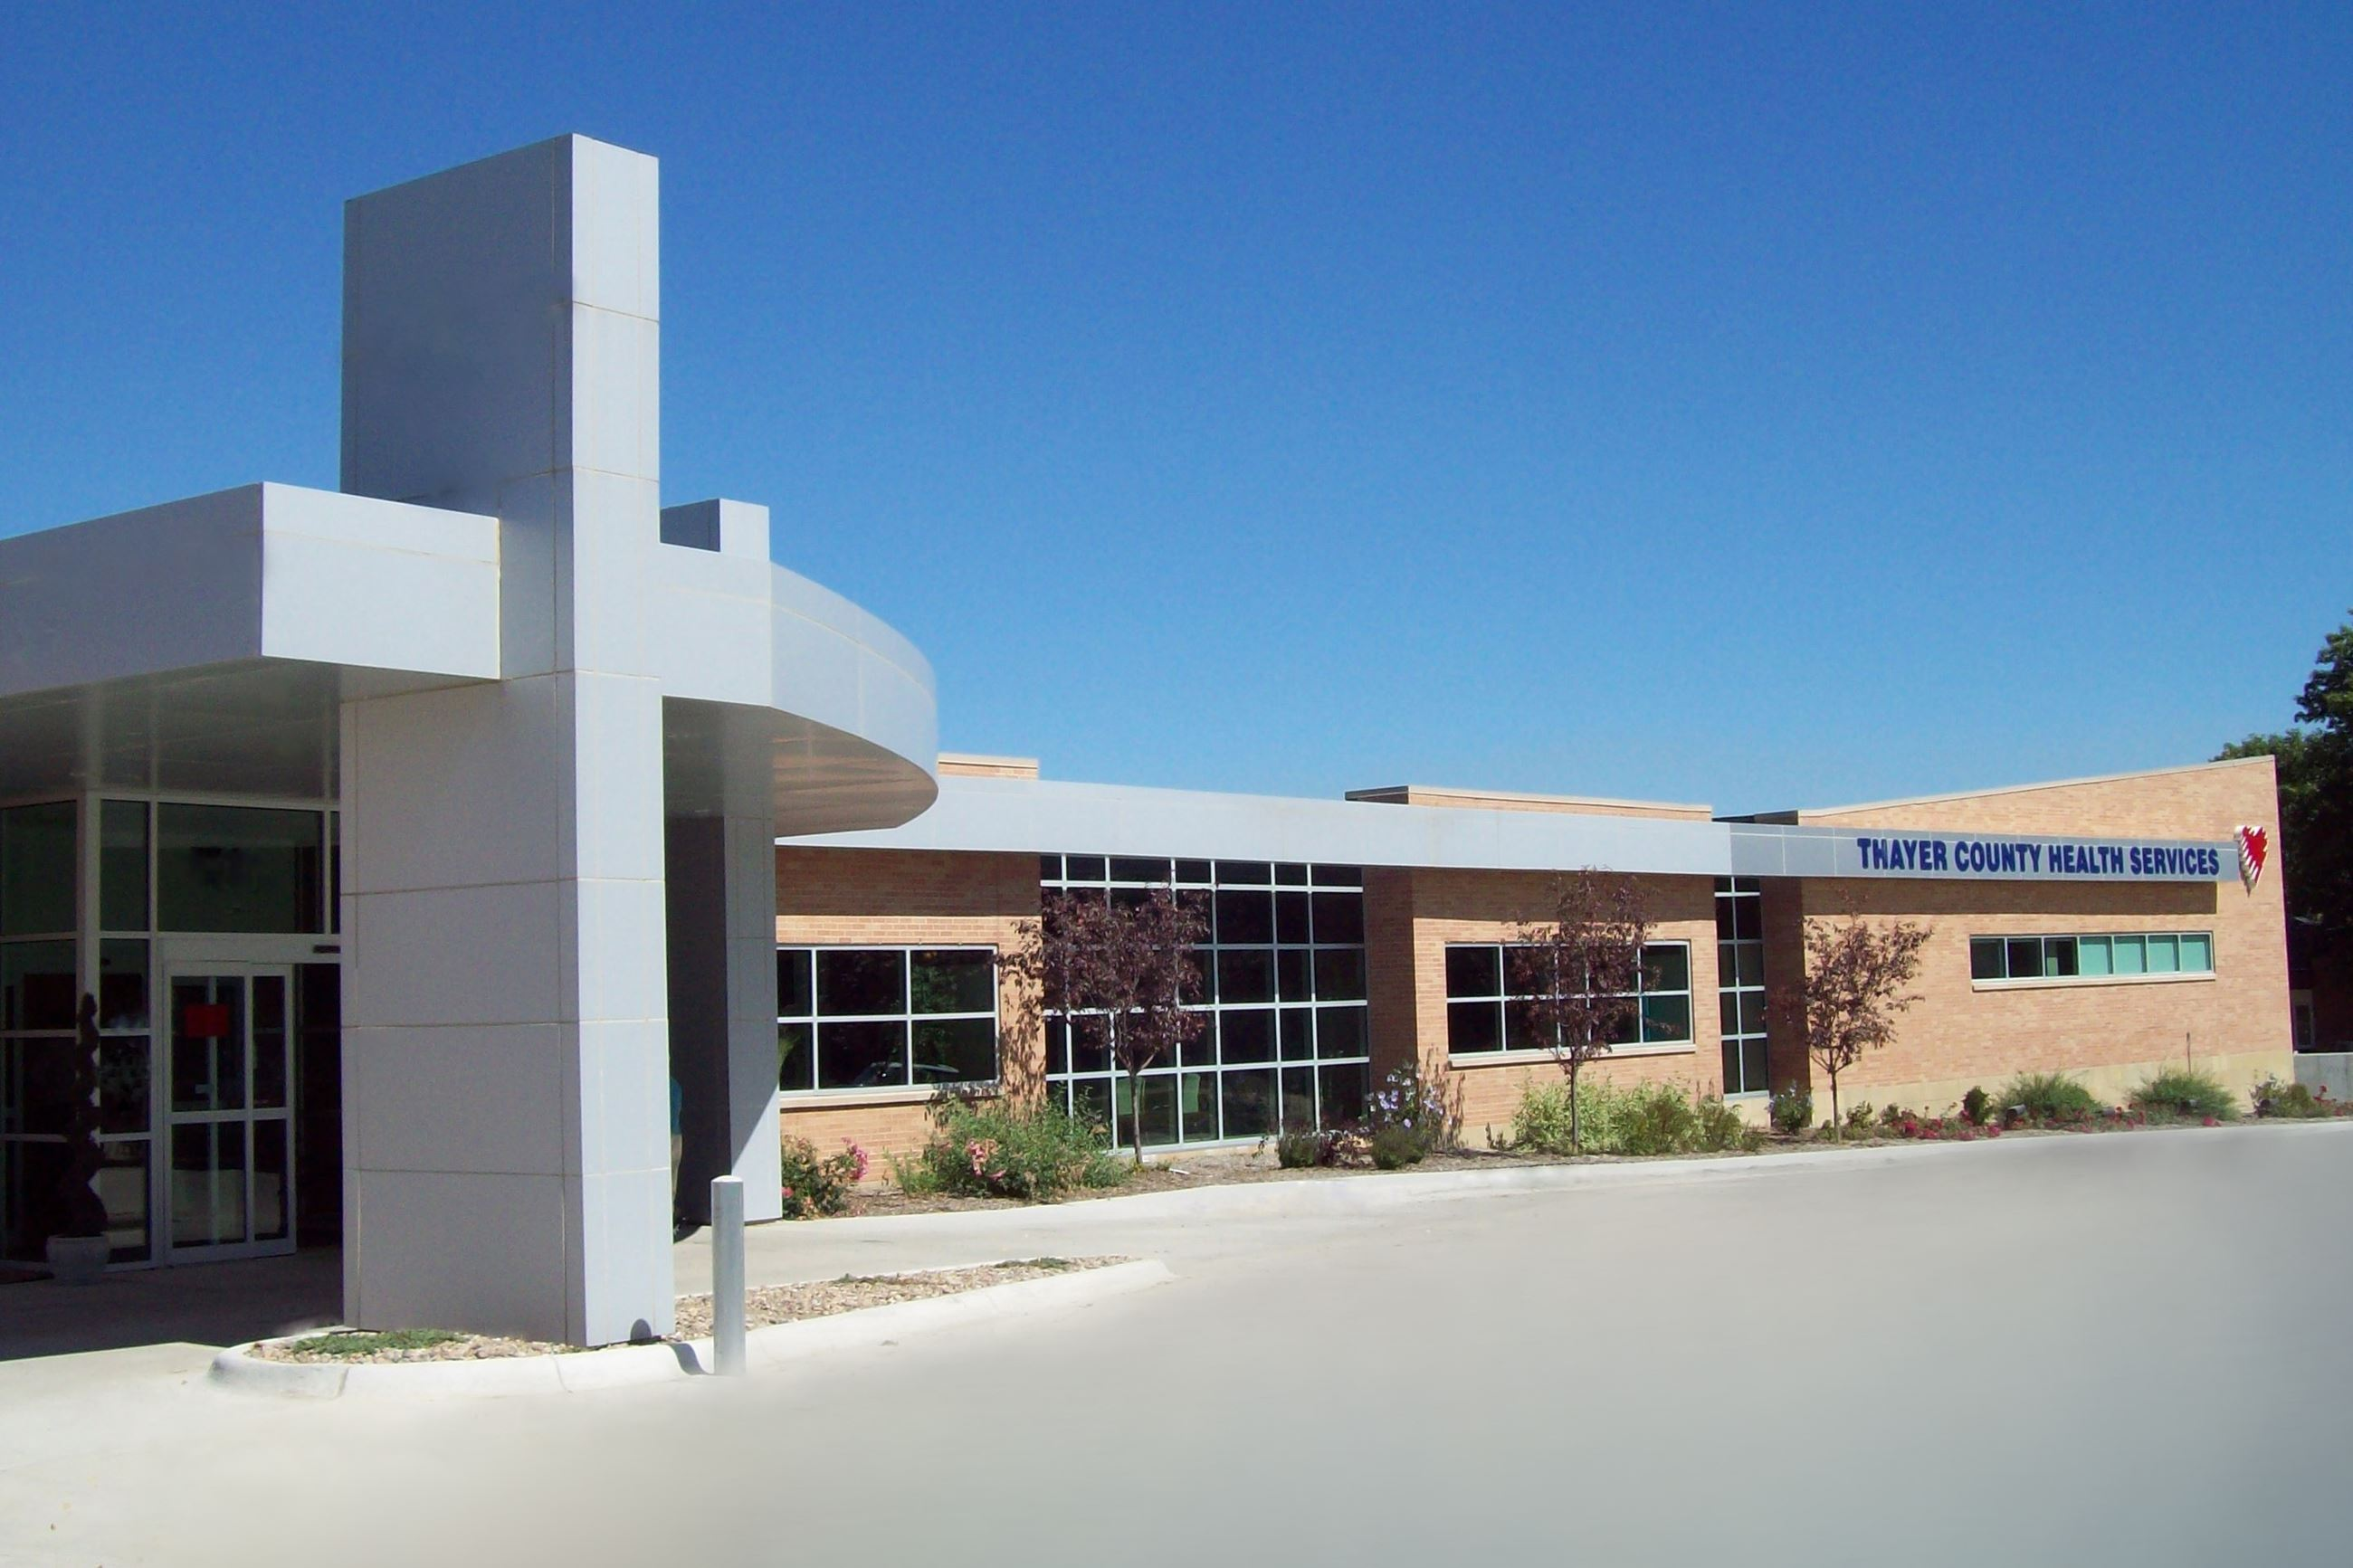 Thayer County Health Services Building